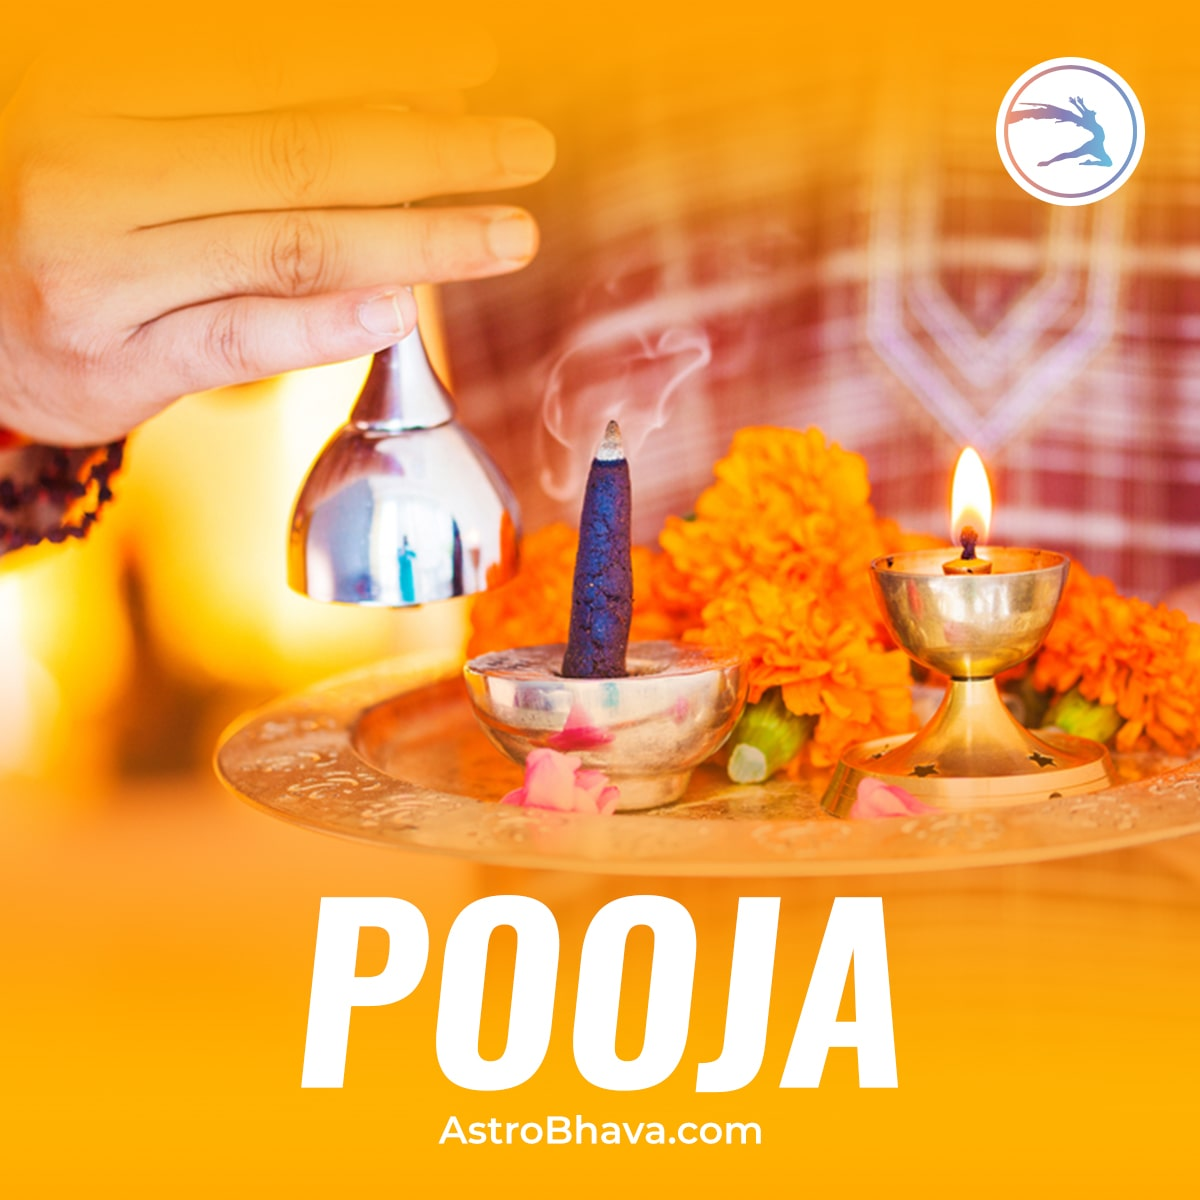 God's blessings through E-pooja services from AstroBhava